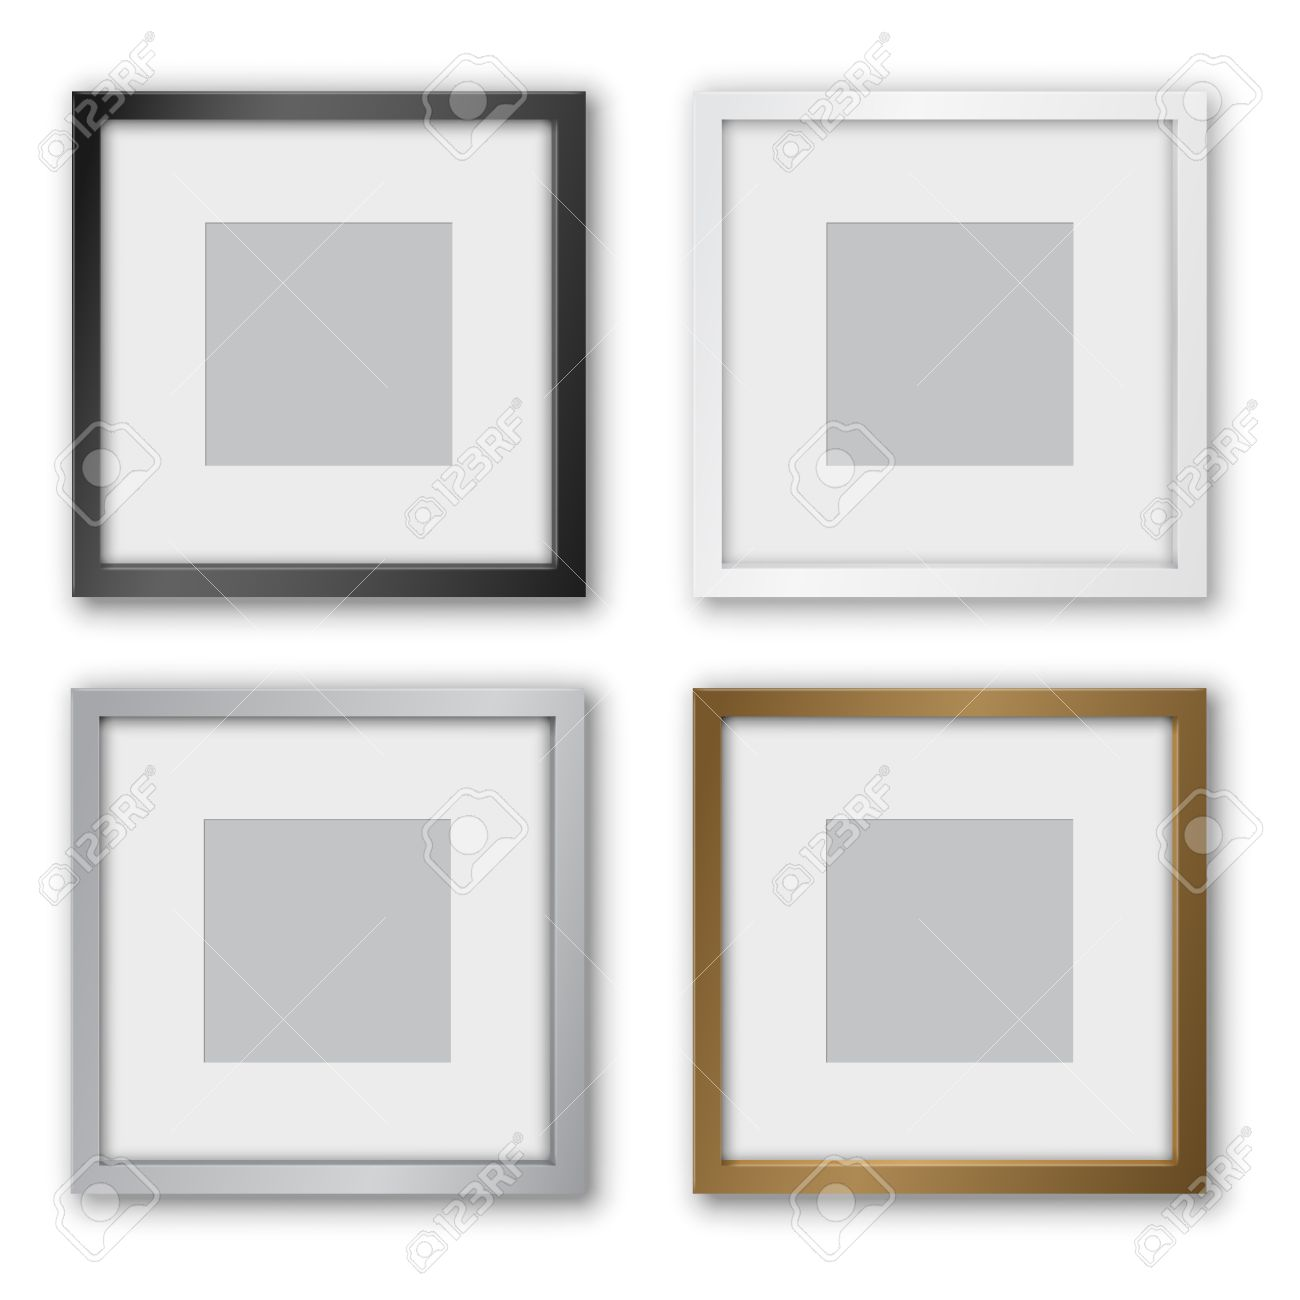 picture frame square format black silver and gold frames design with thin borders